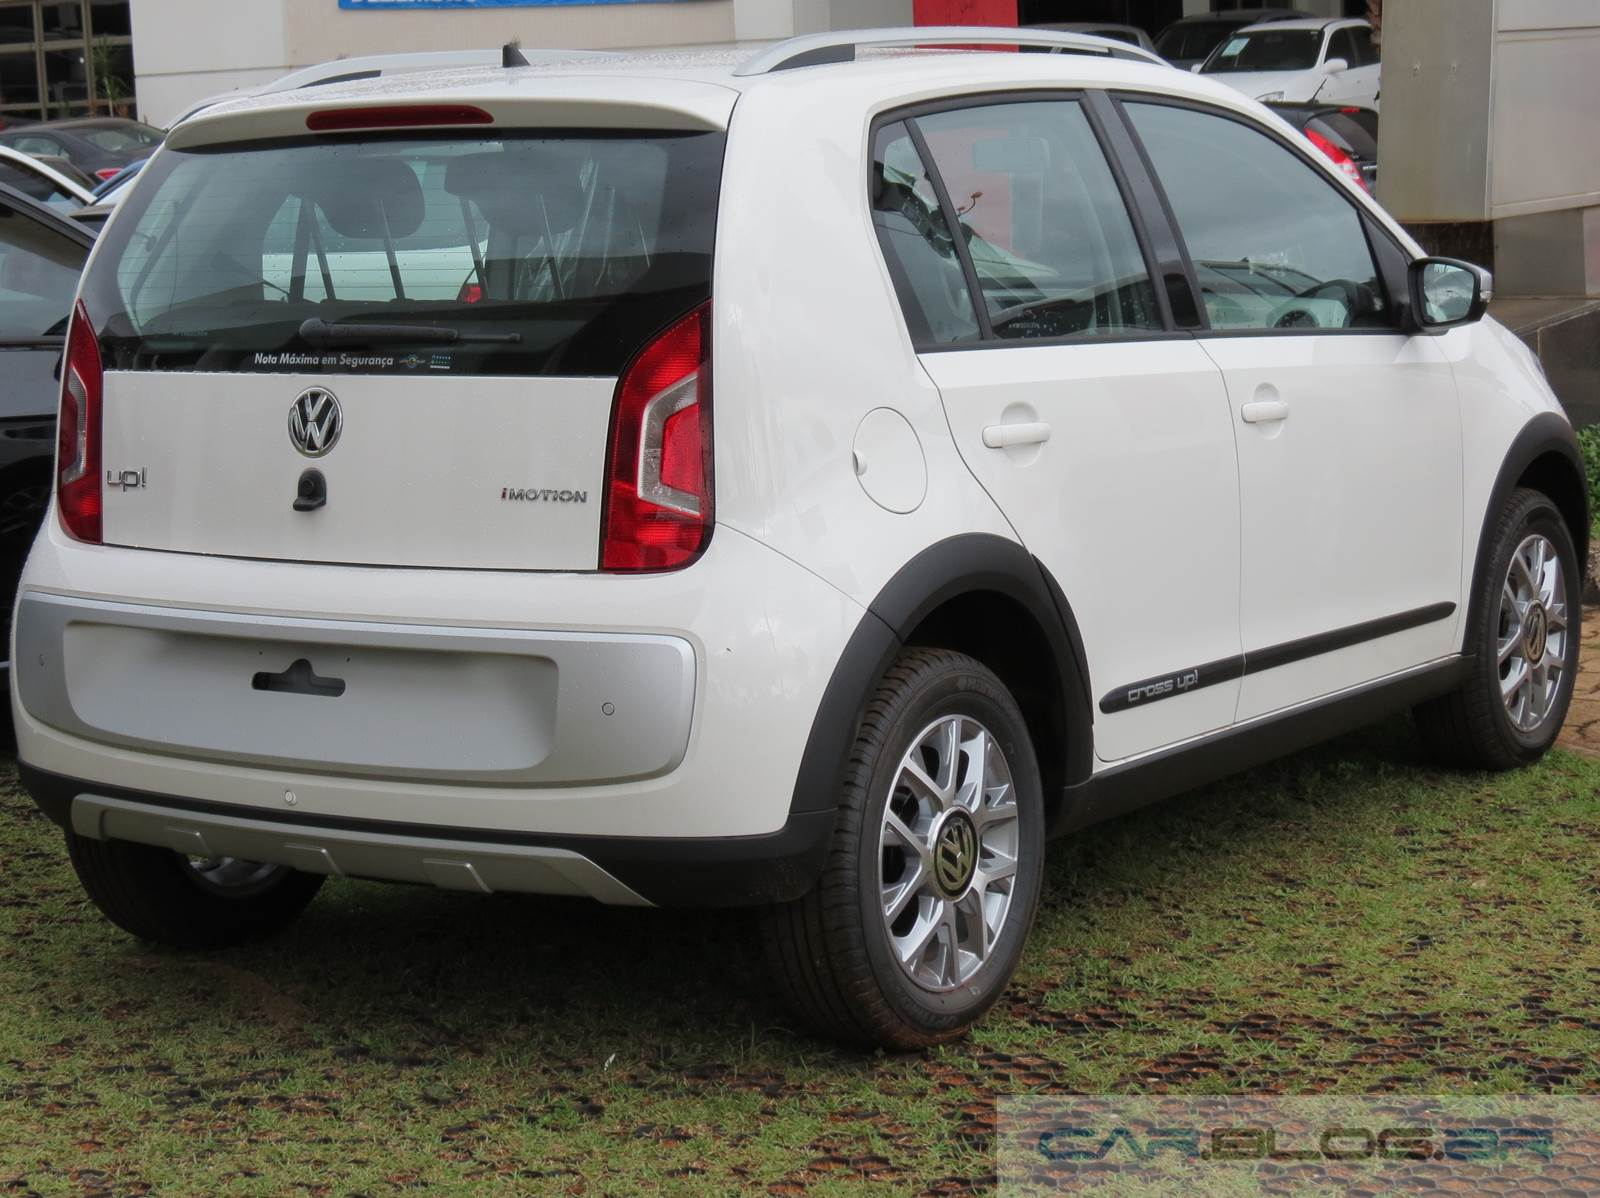 Volkswagen Crsso Up! I-Motion x Fiat Uno Dualogic